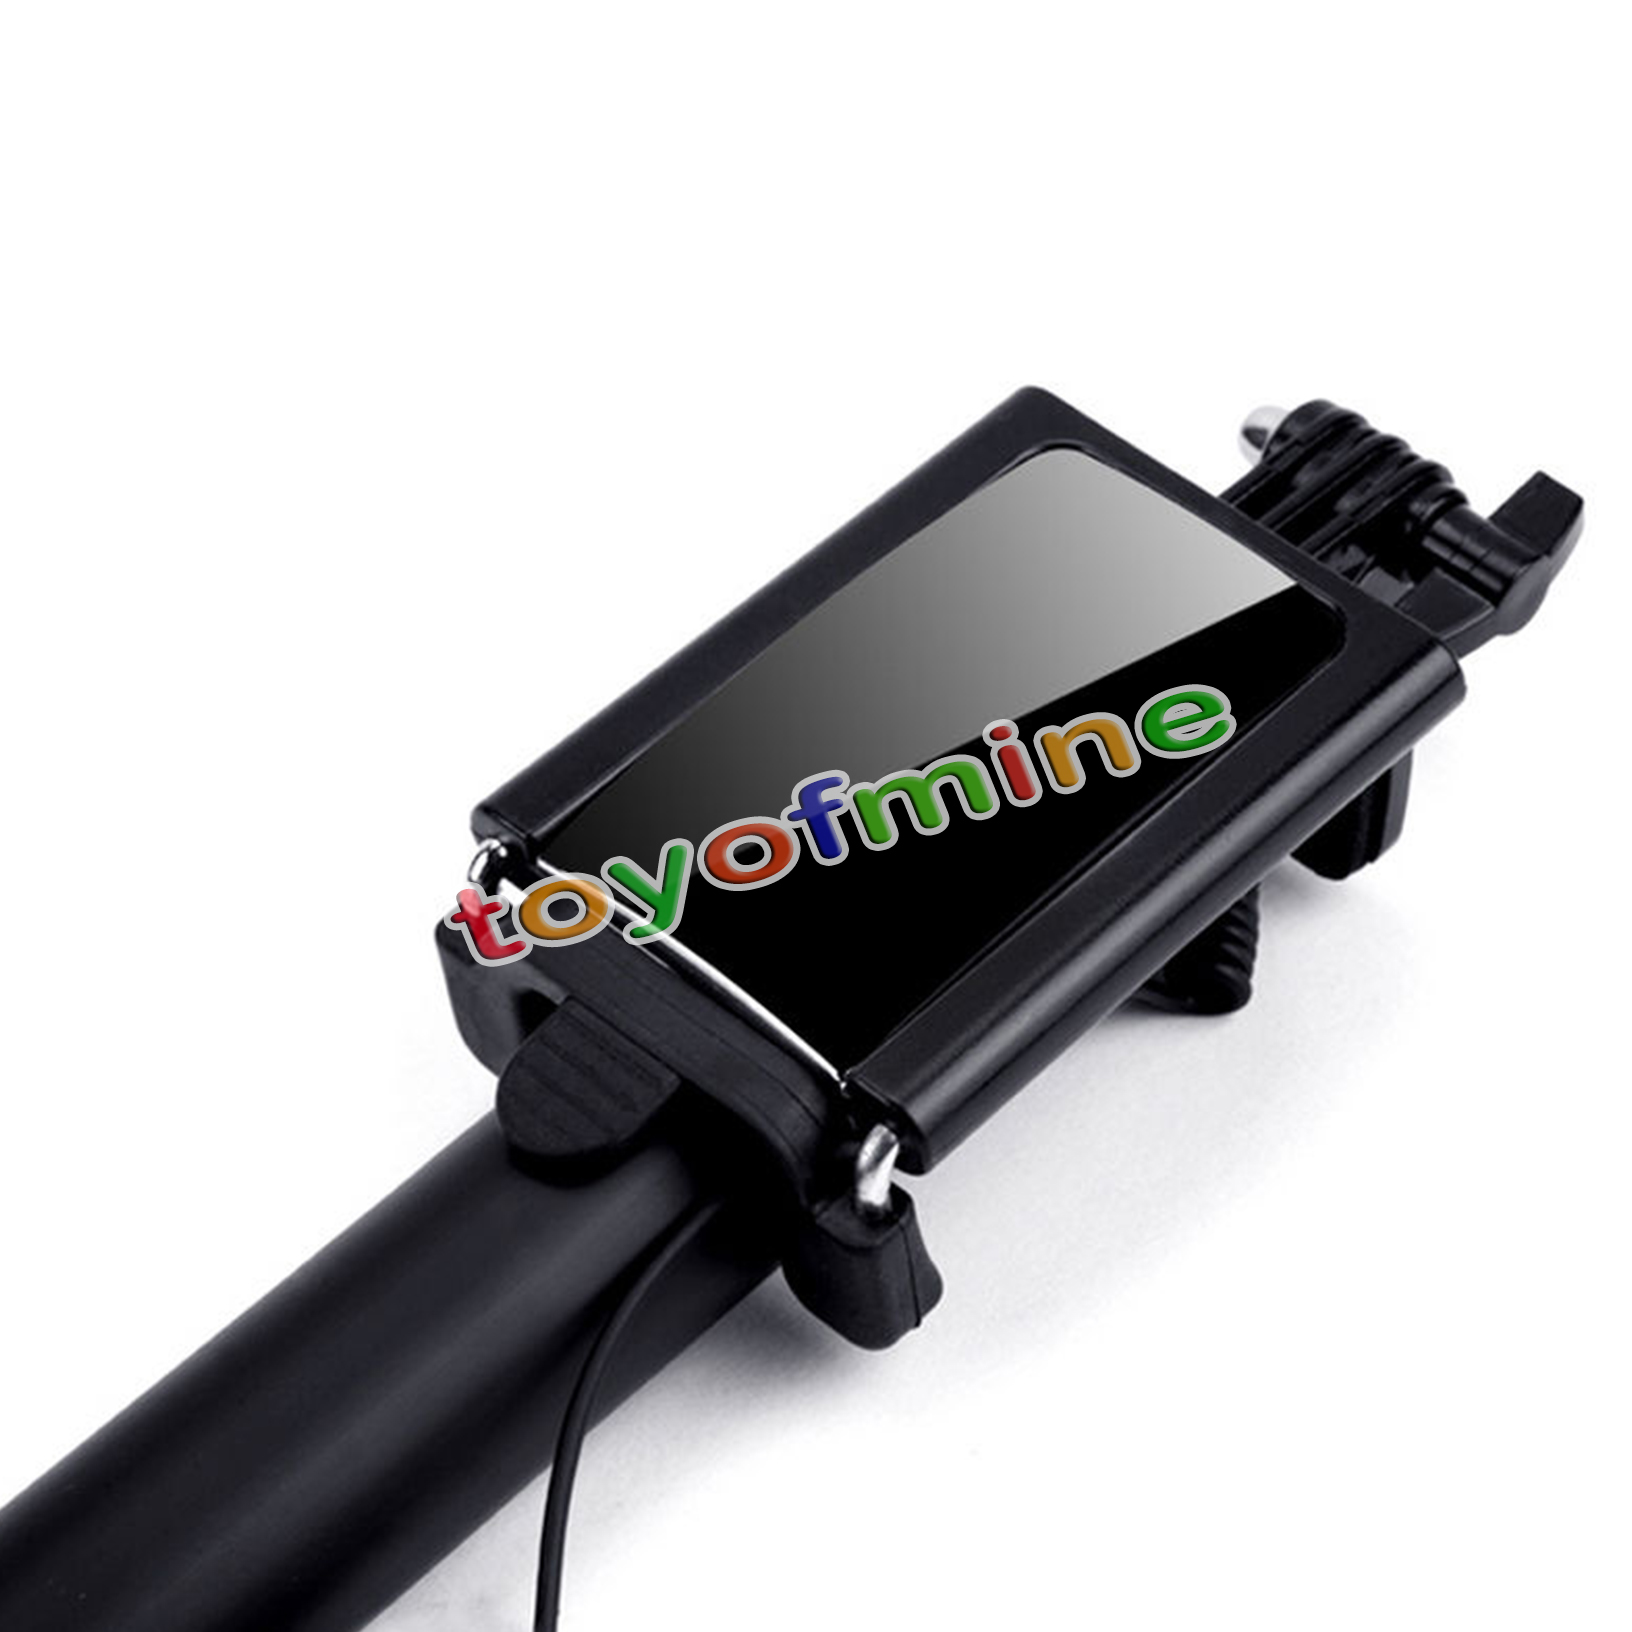 mirror extendable handheld wired monopod selfie stick for samsung iphone ios lg. Black Bedroom Furniture Sets. Home Design Ideas